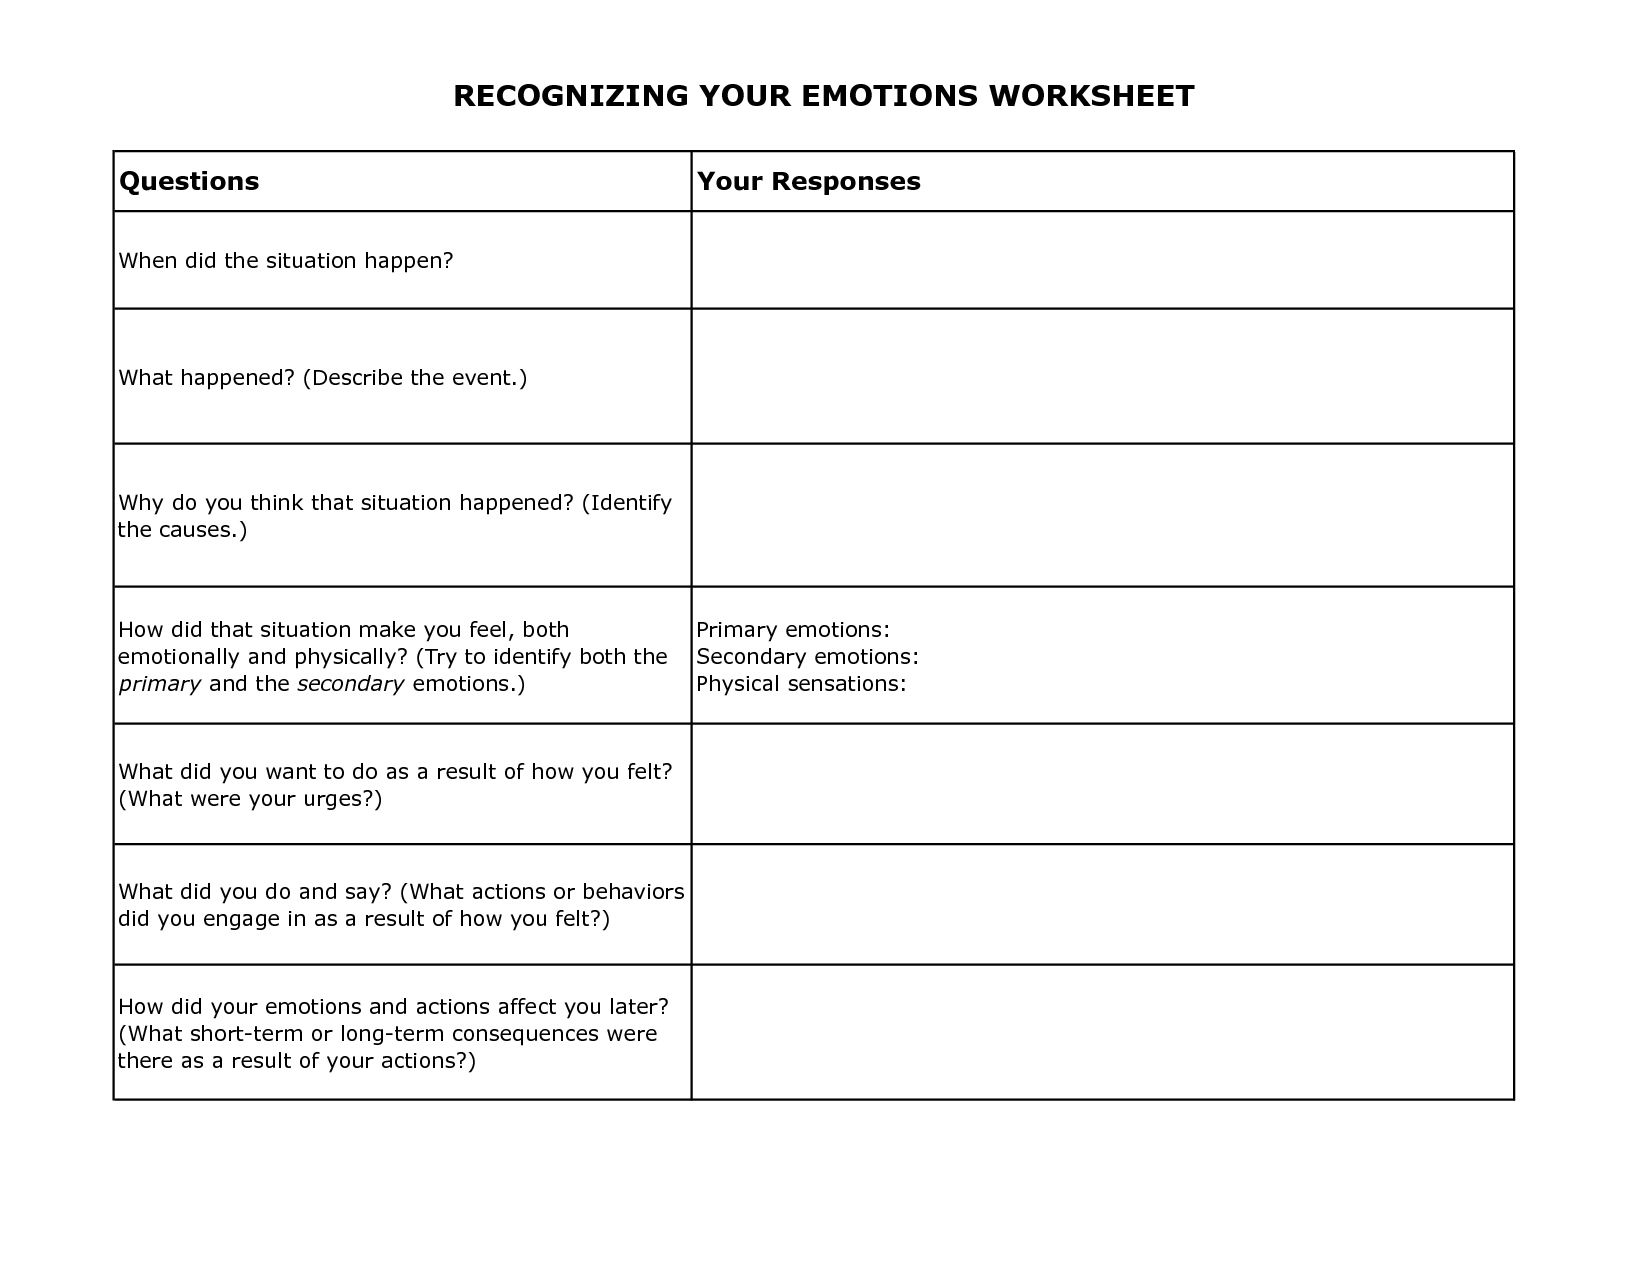 Free Printable Dbt Worksheets | Recognizing Your Emotions Worksheet - Free Printable Coping Skills Worksheets For Adults